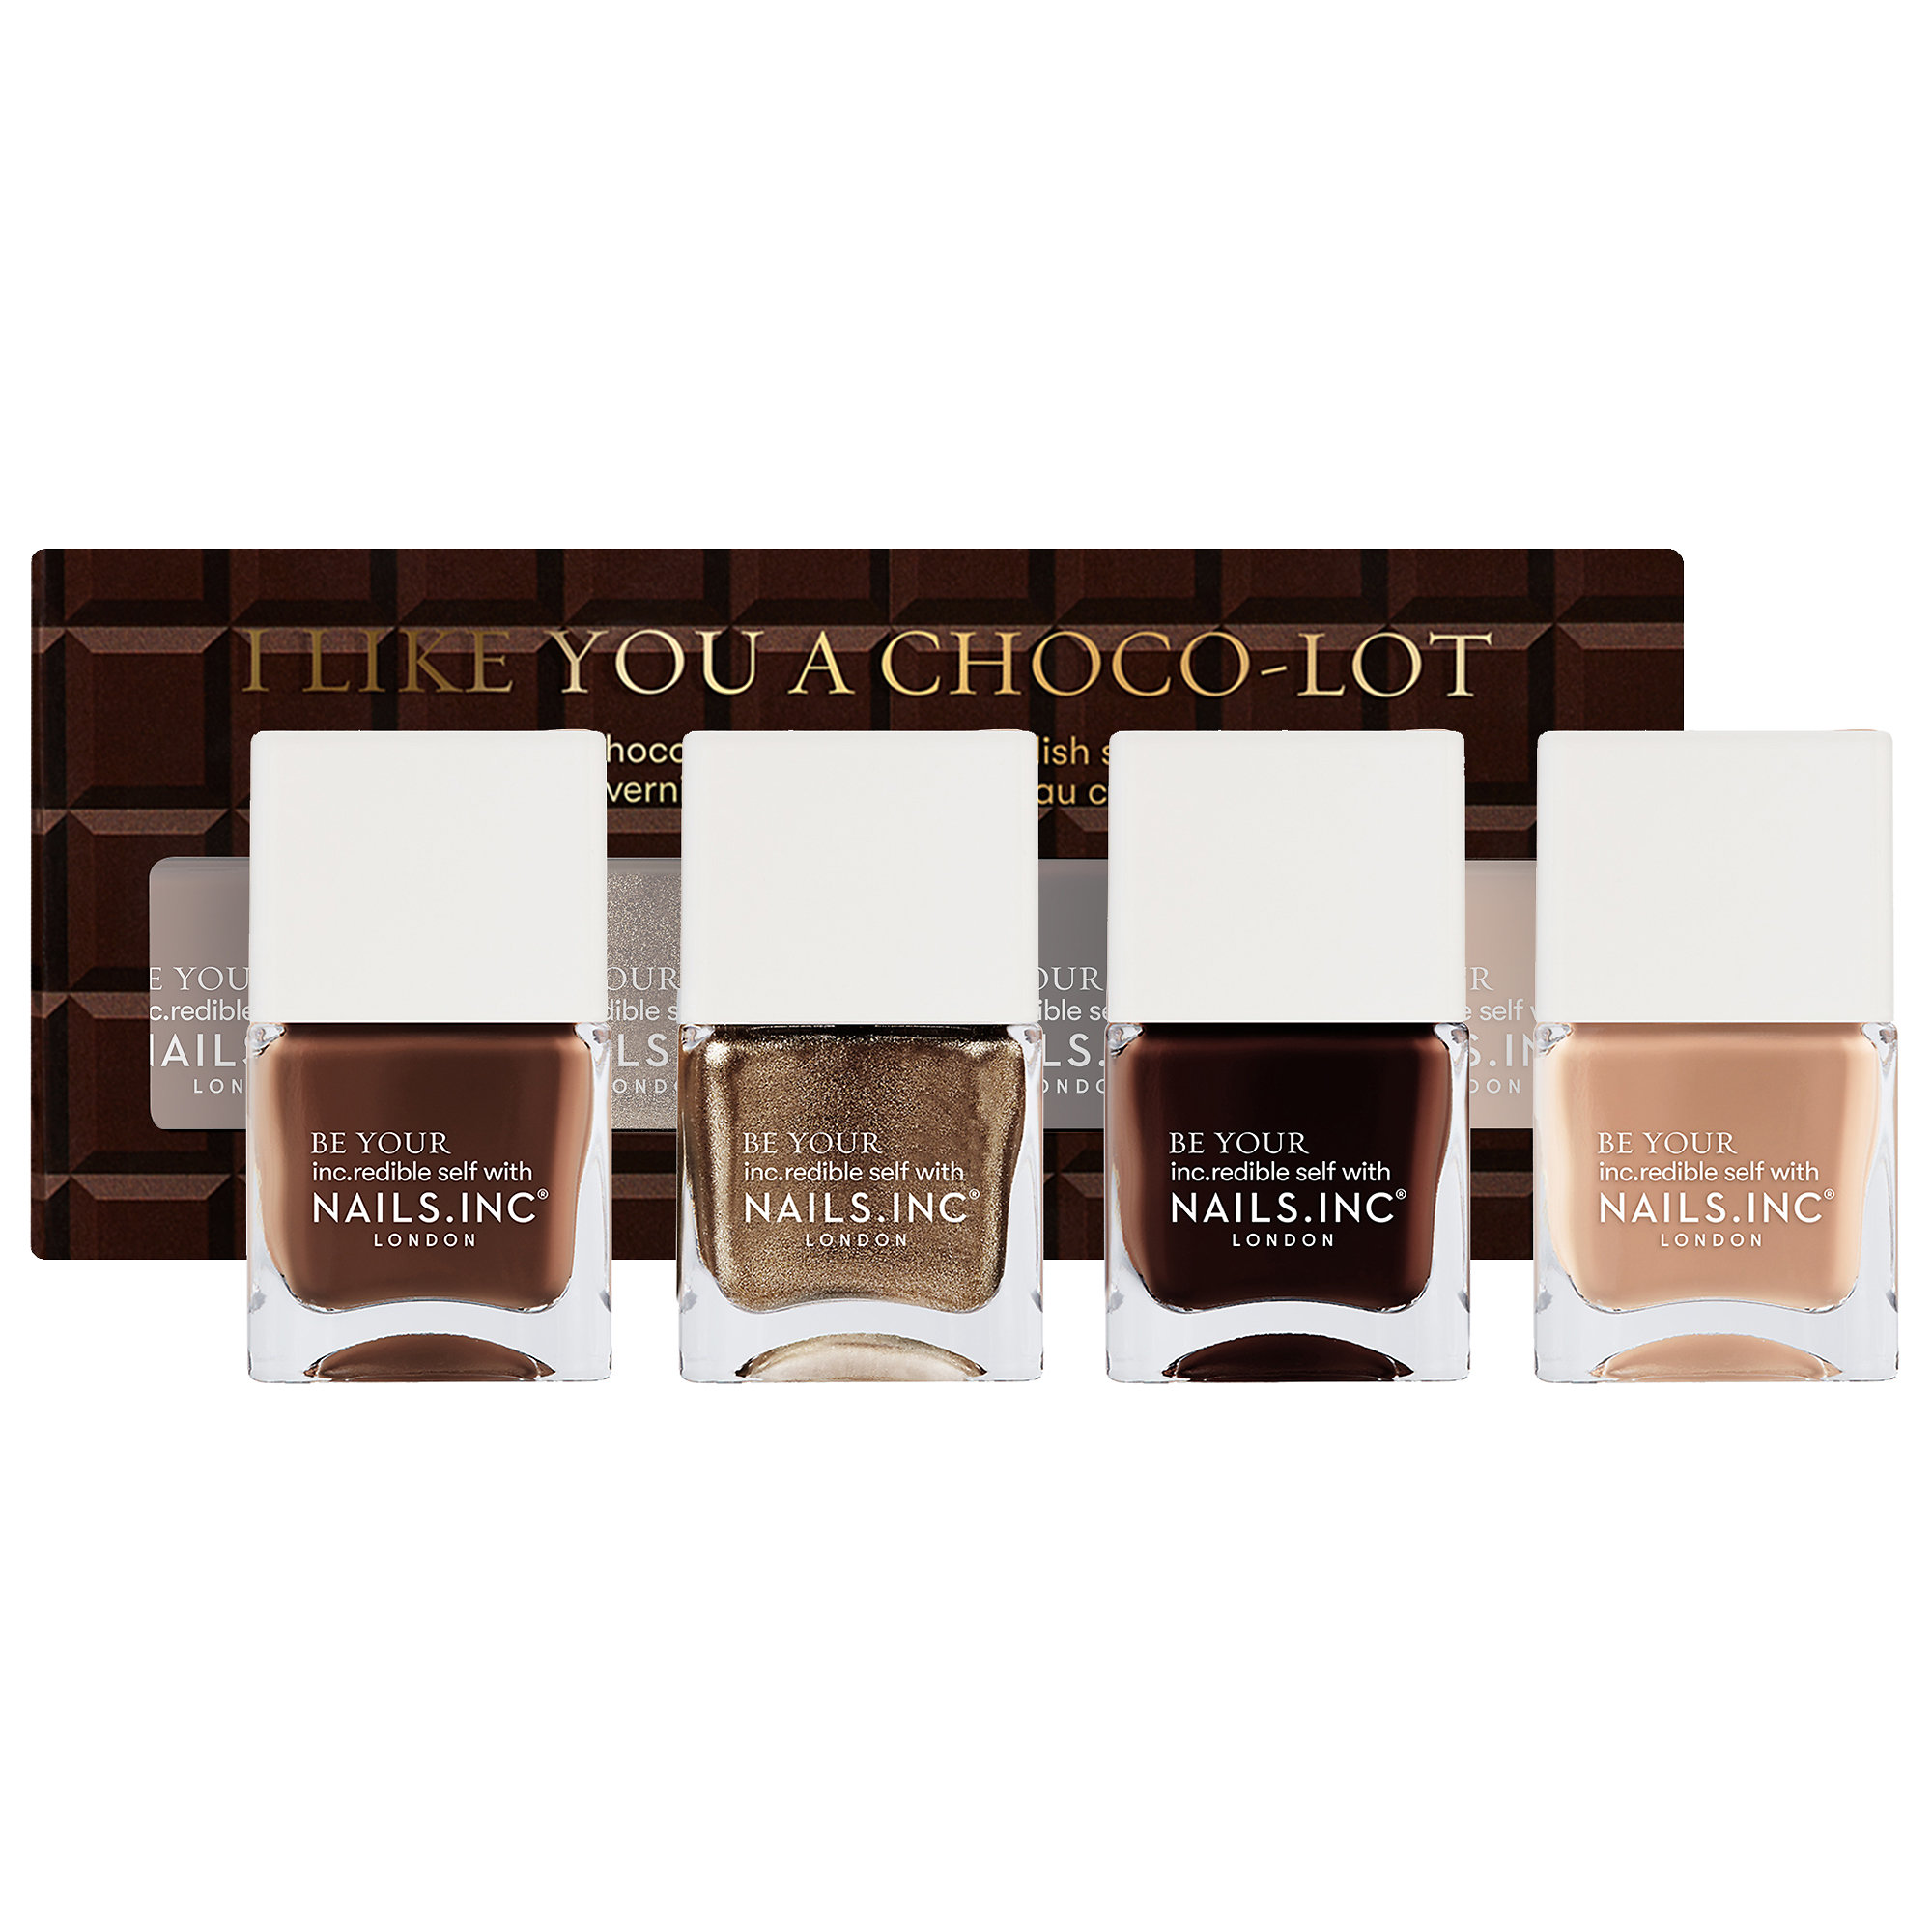 Nails Inc. - I Like You a Choco-Lot Nail Polish Quad Set